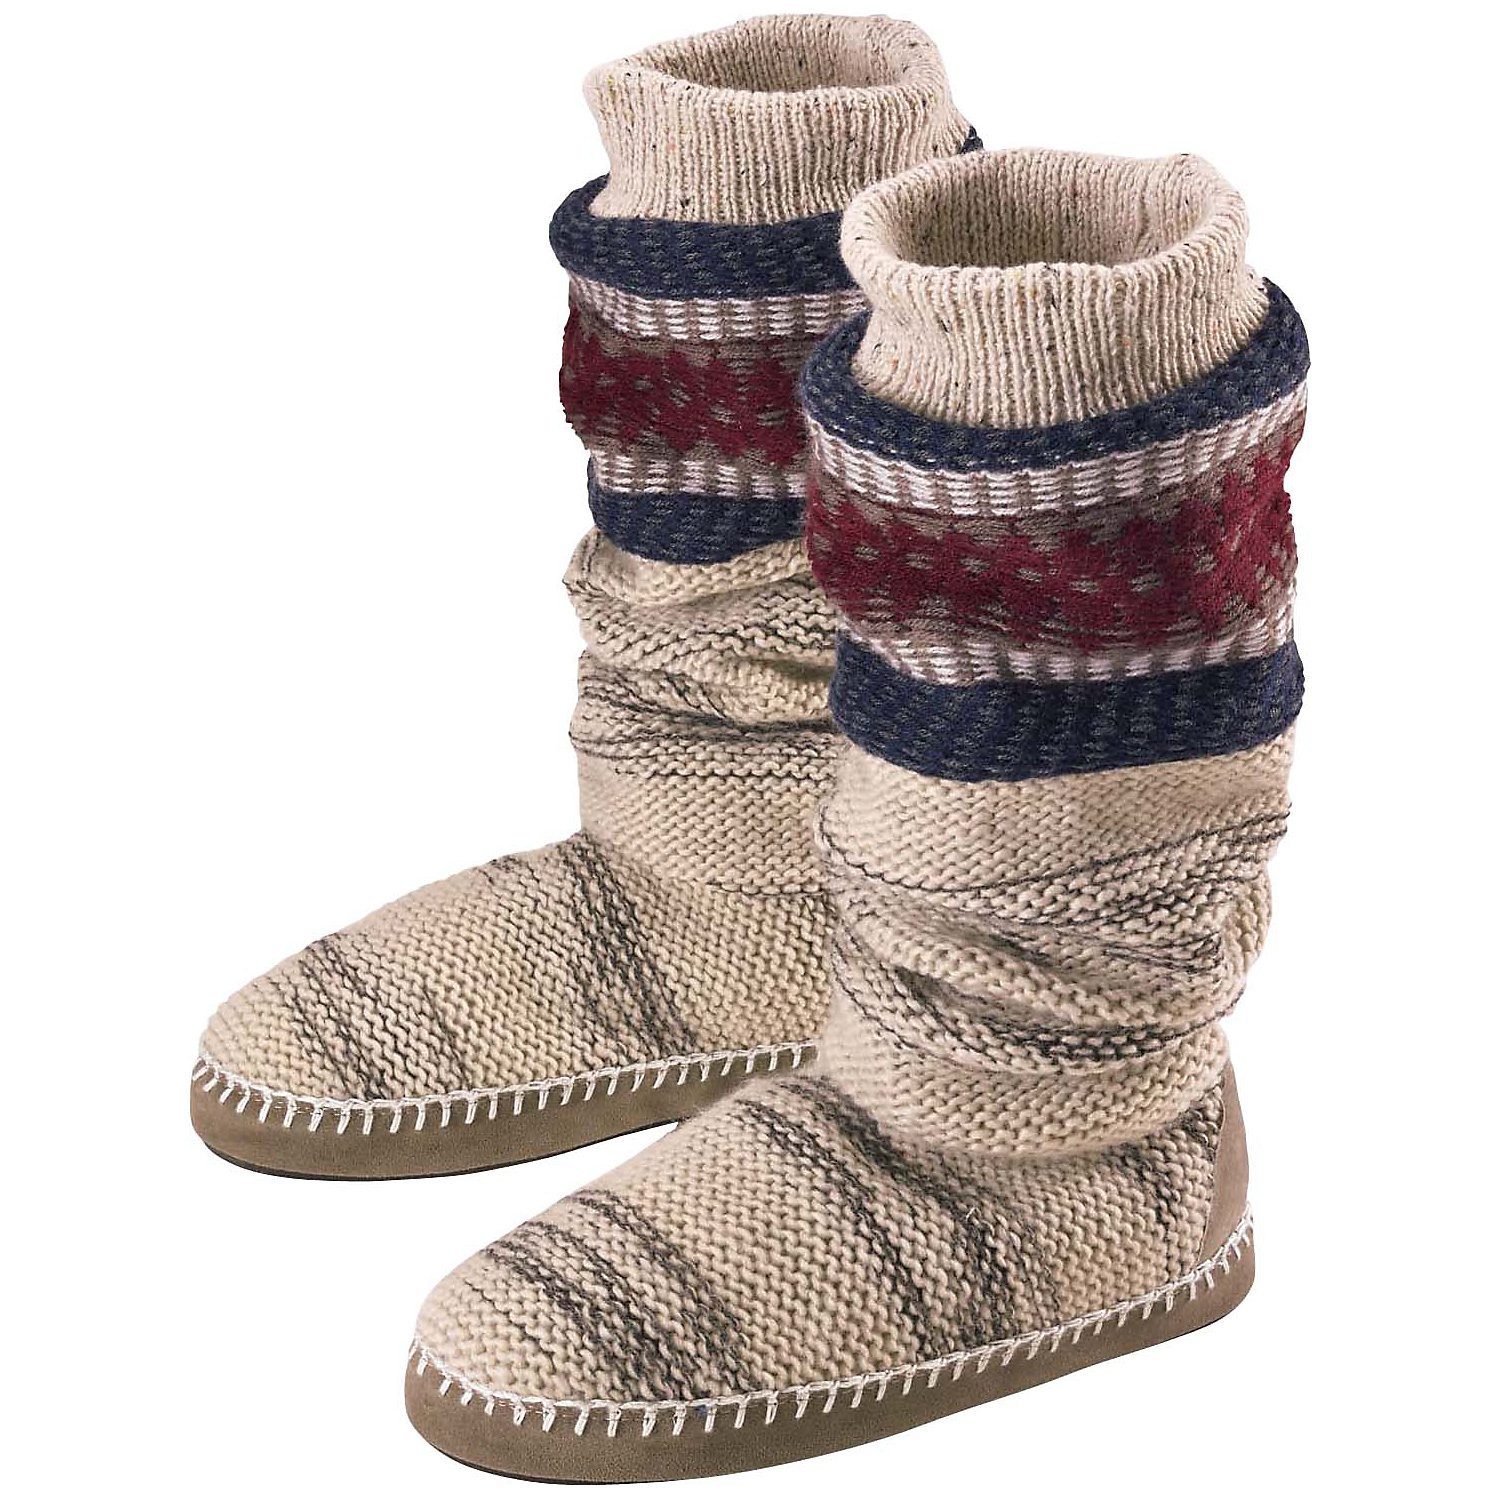 Knit Boots Beautiful Muk Luks Ala Mode Women S Tall Knit Boot Slipper Walmart Of Luxury 48 Photos Knit Boots